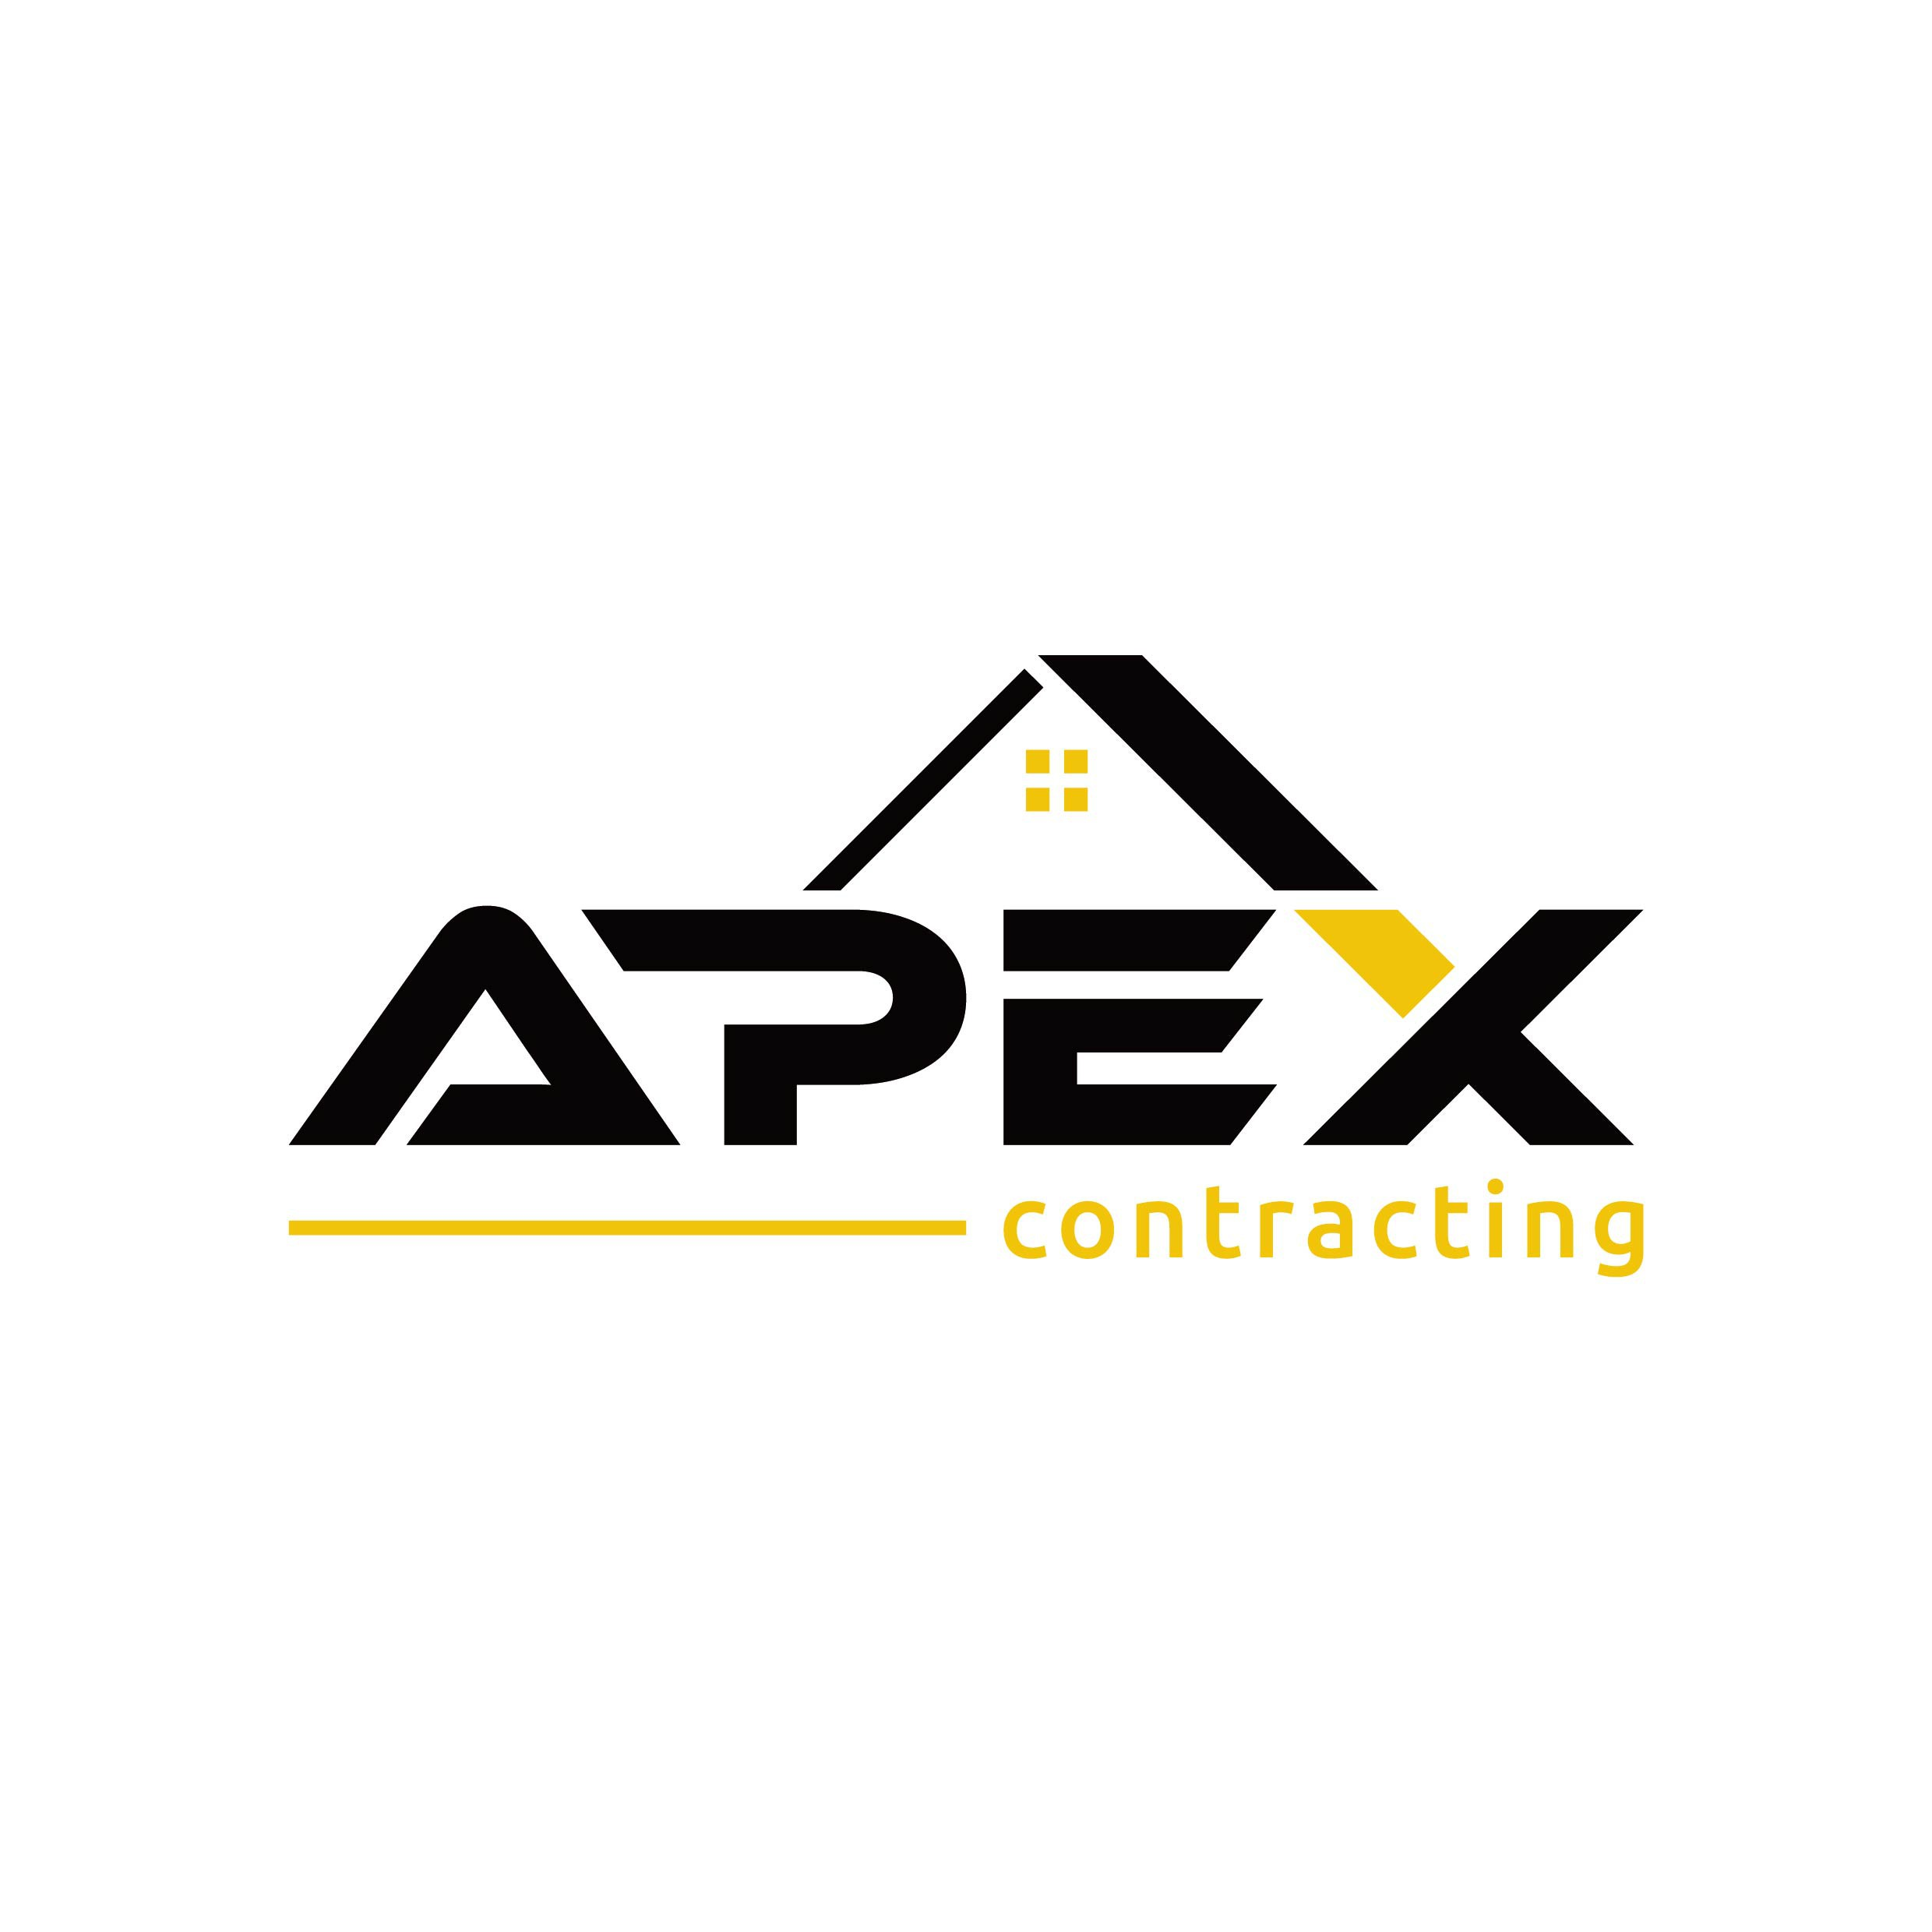 Design a construction business logo that stands out and builds trust